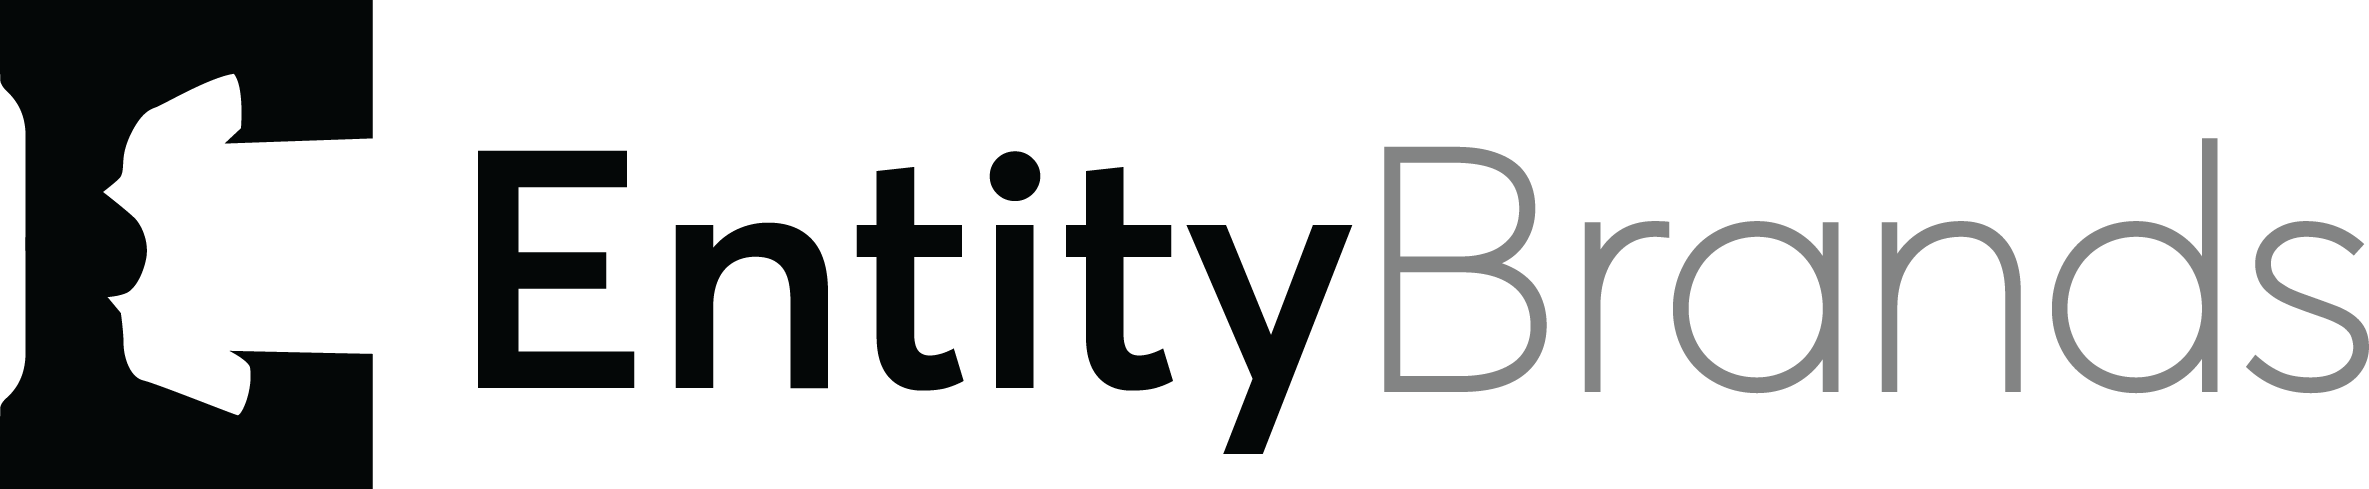 Entity Brands